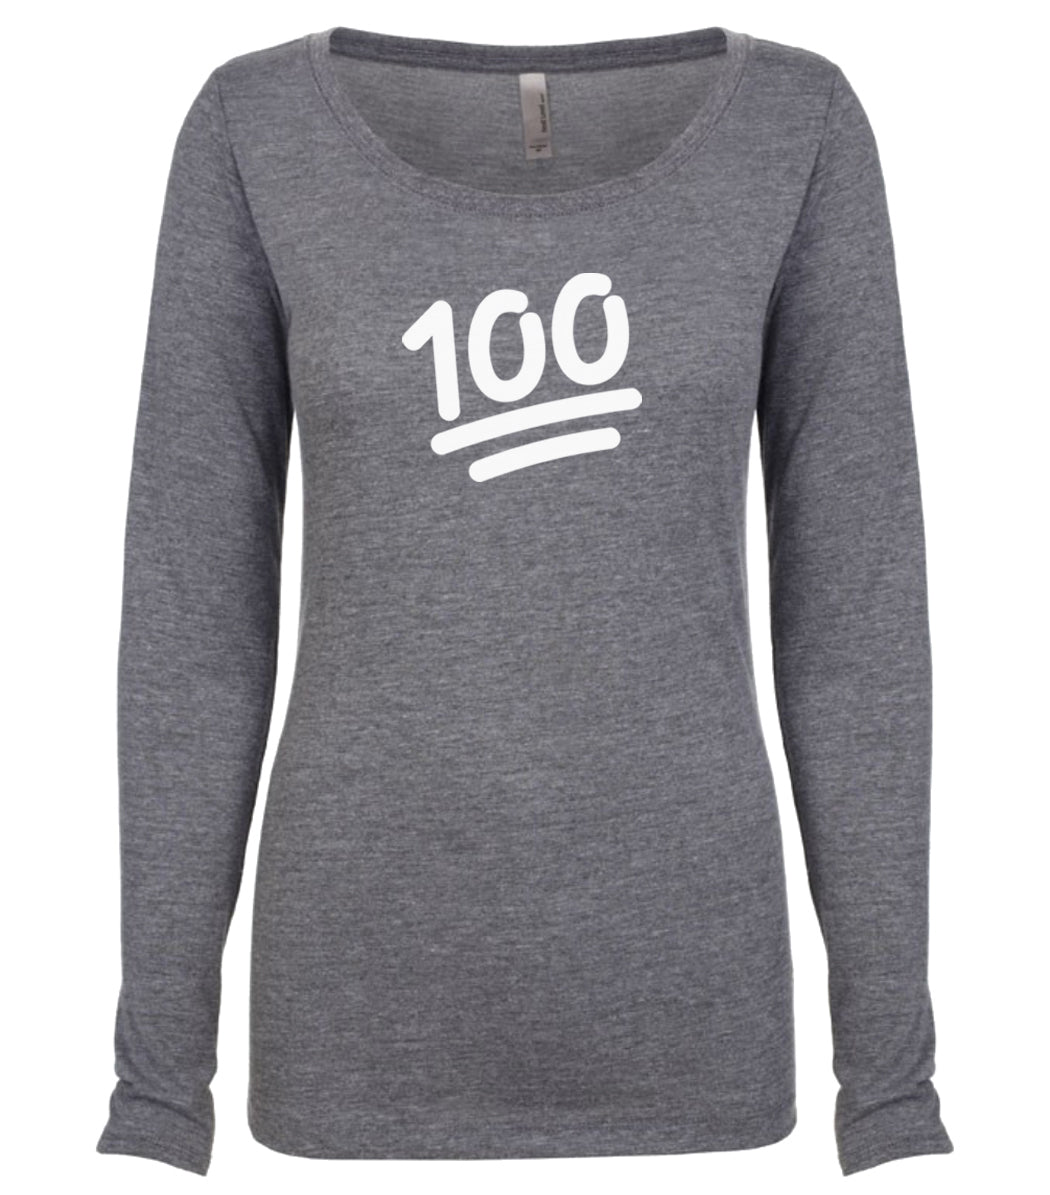 grey 100 long sleeve scoop shirt for women